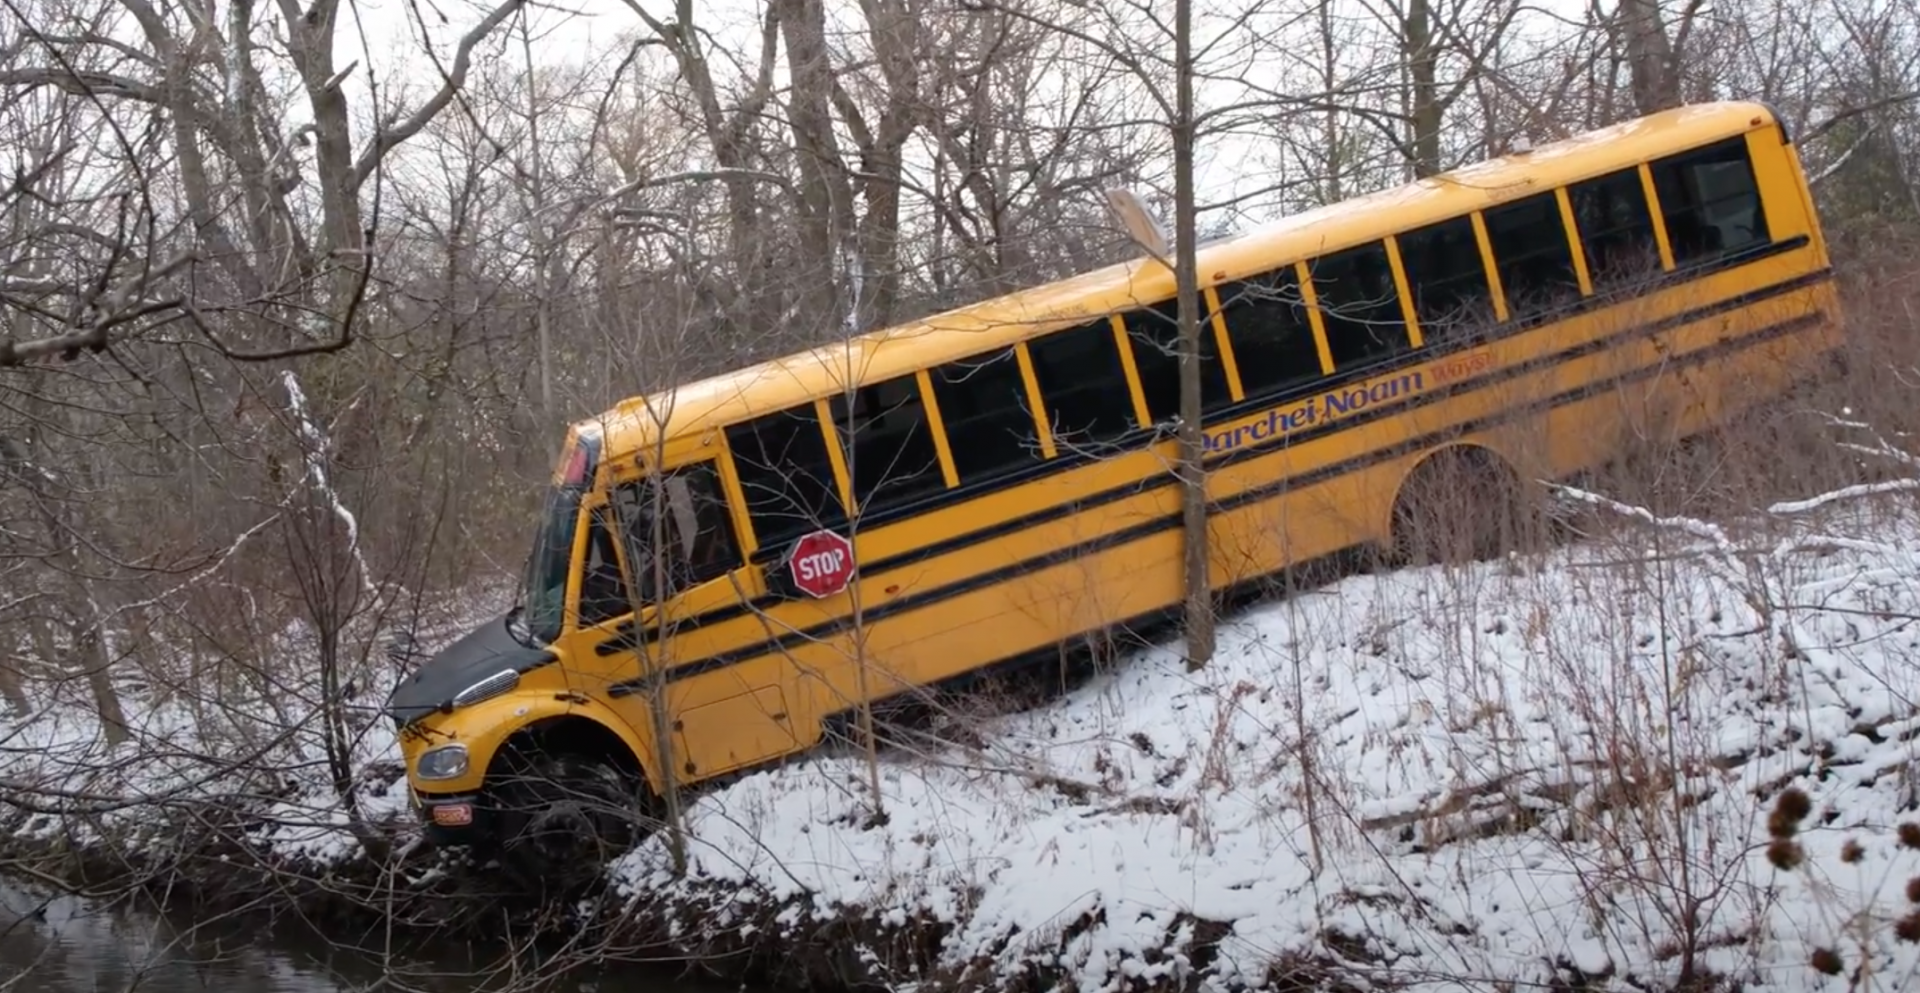 Two stolen school buses ditched in pond north of Toronto (VIDEO)